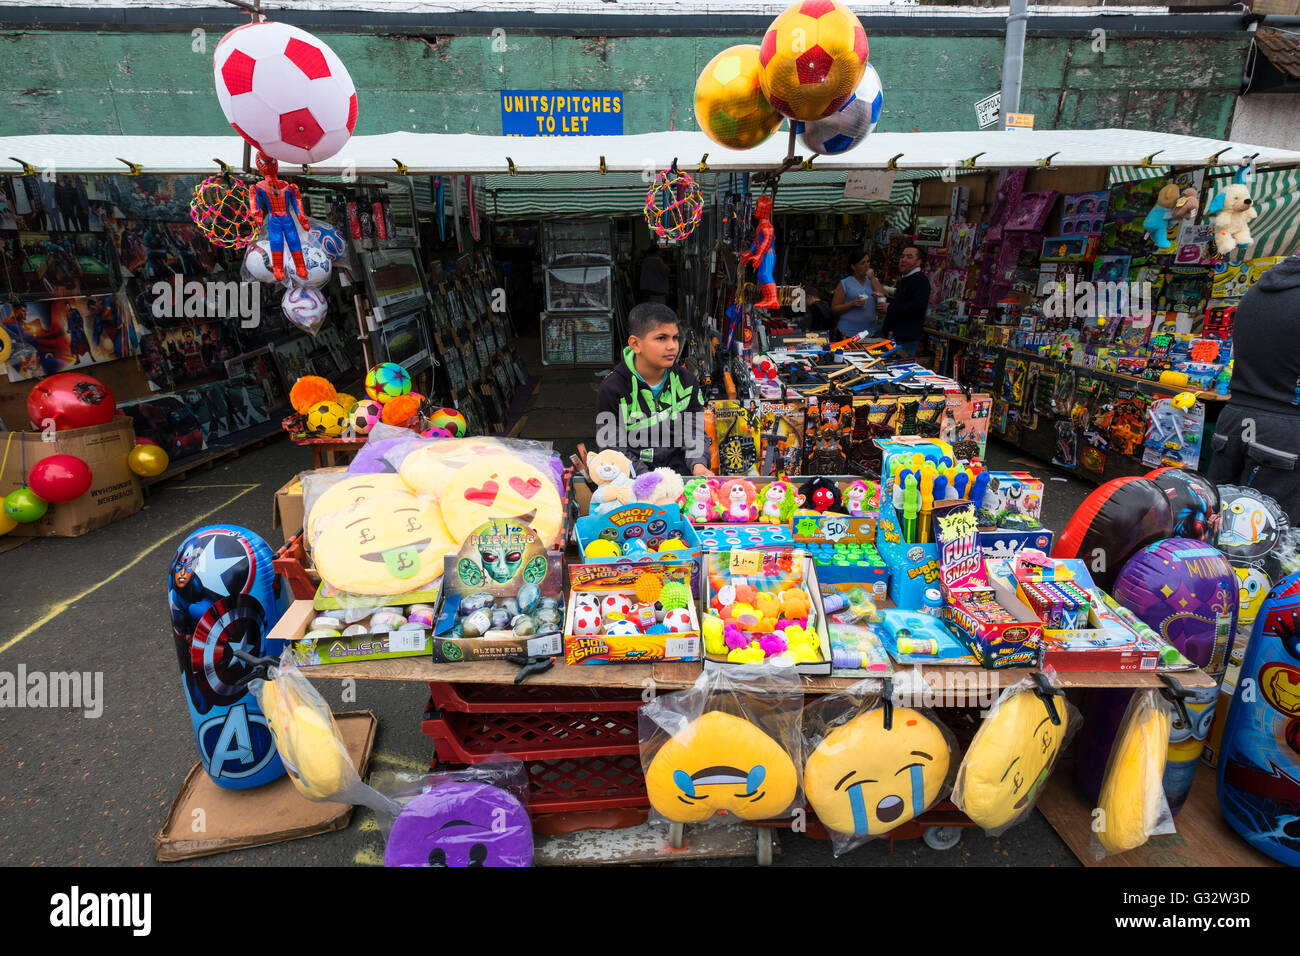 Stall selling cheap toys at Barras Market in Gallowgate Glasgow, United Kingdom - Stock Image